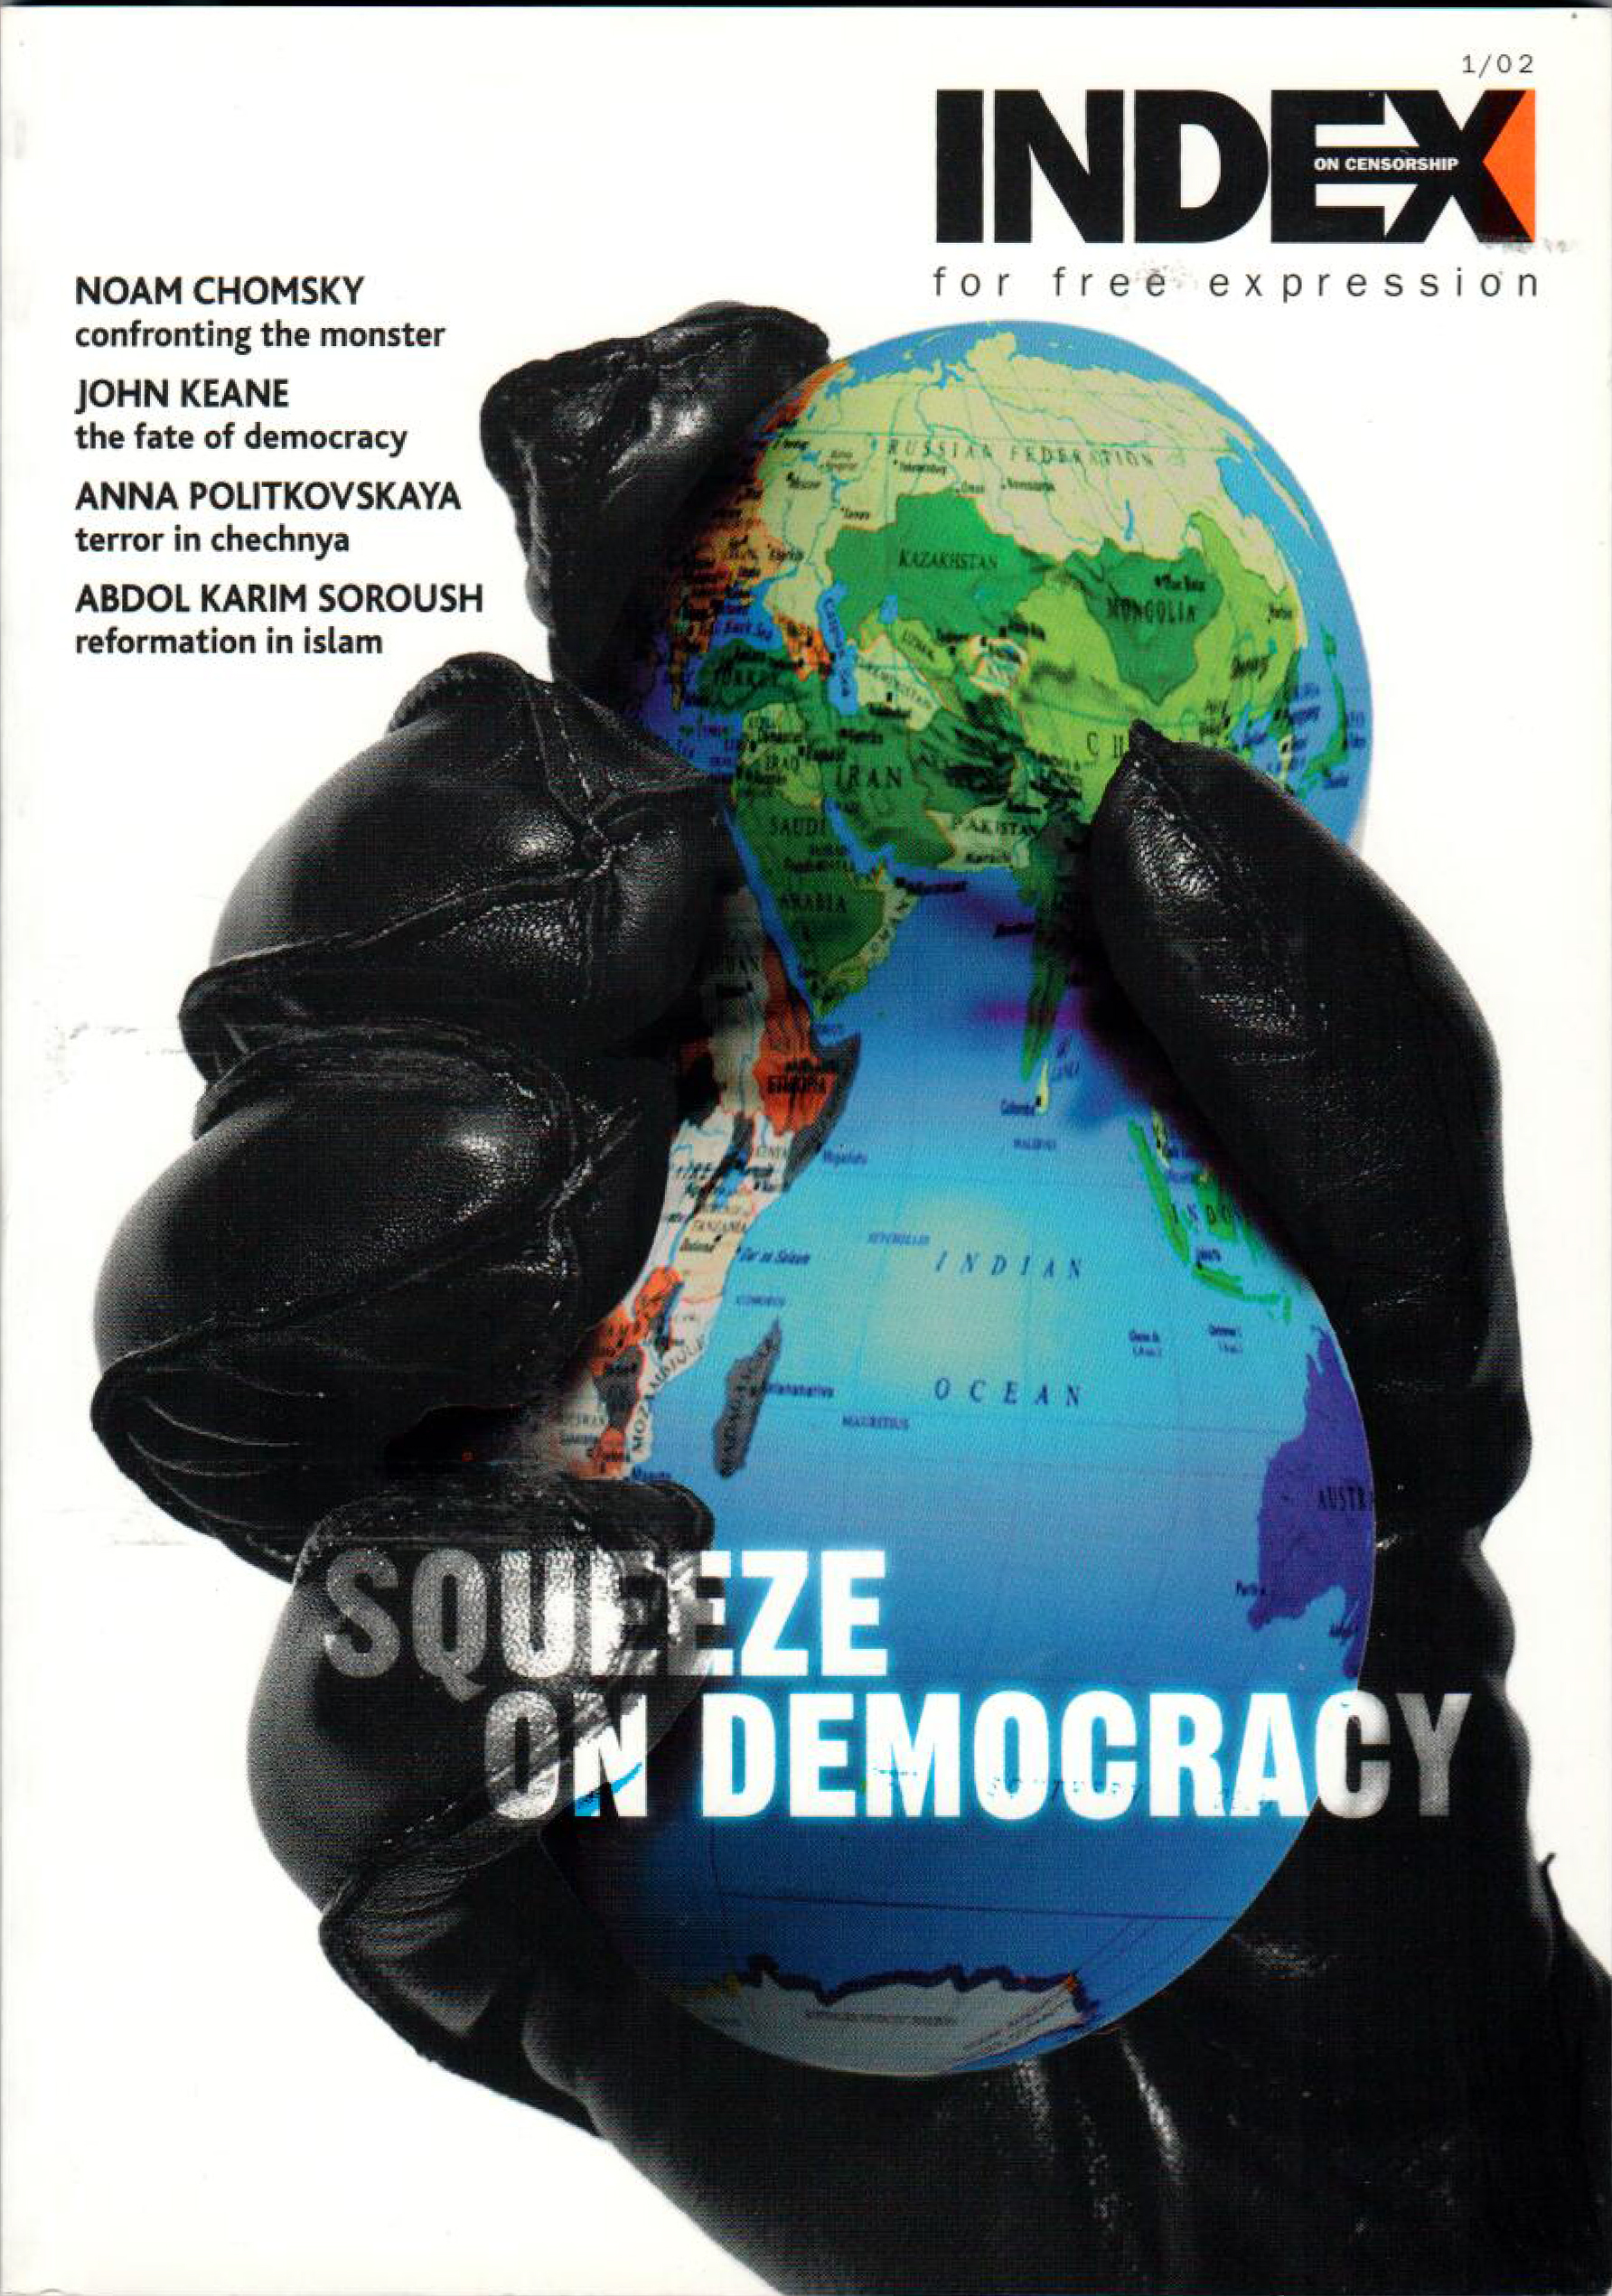 Squeeze on democracy, the spring 2002 issue of Index on Censorship magazine.